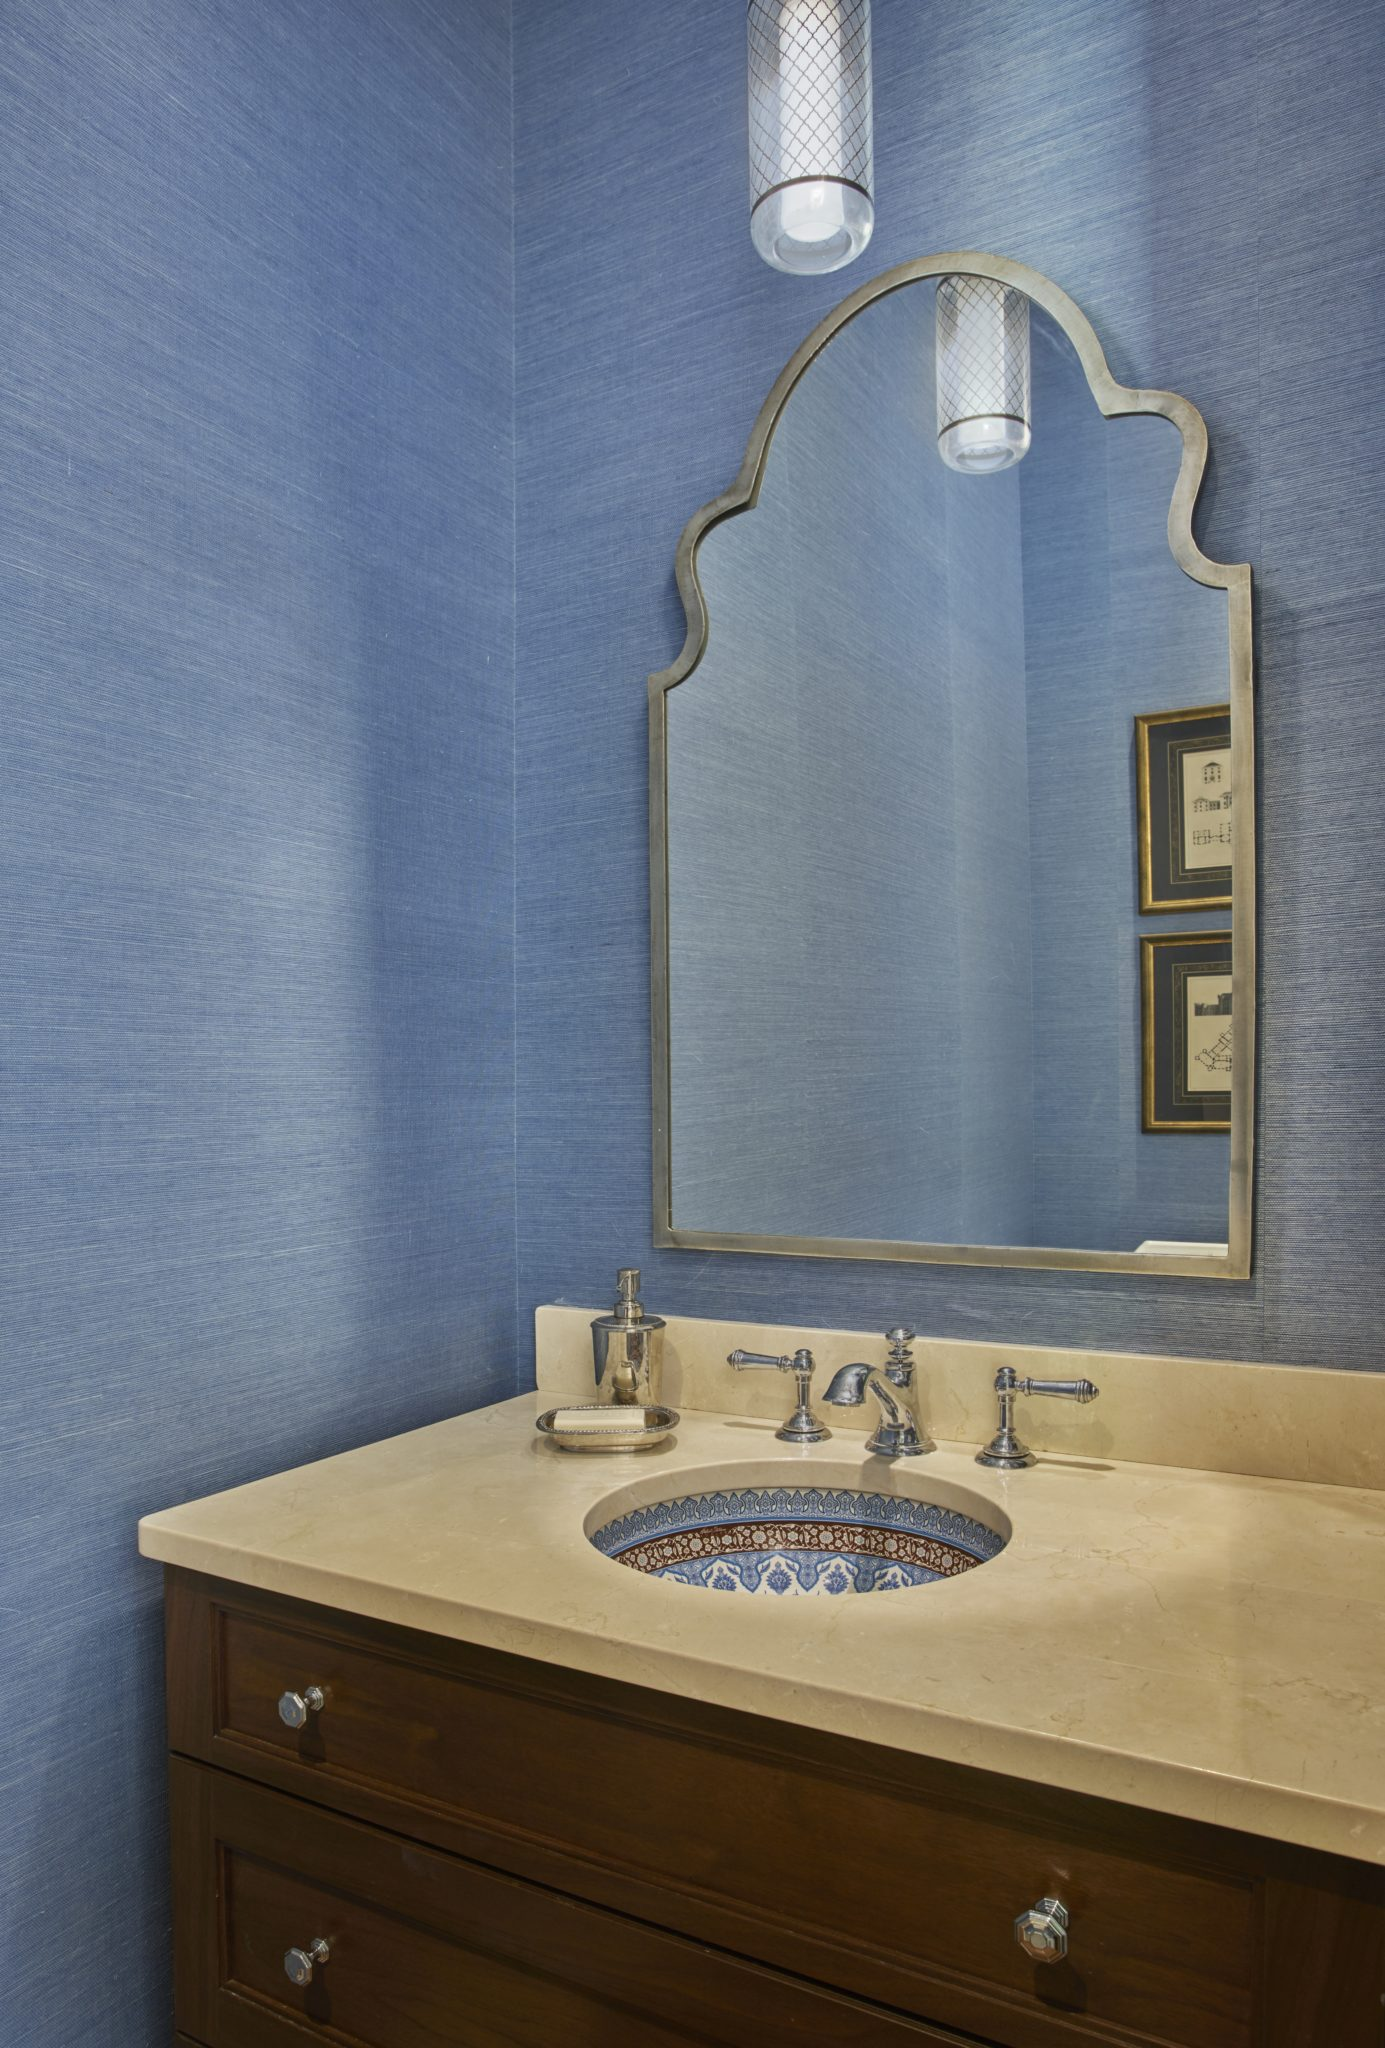 City Residence Powder Room by studio m interiors - Claudia Martin